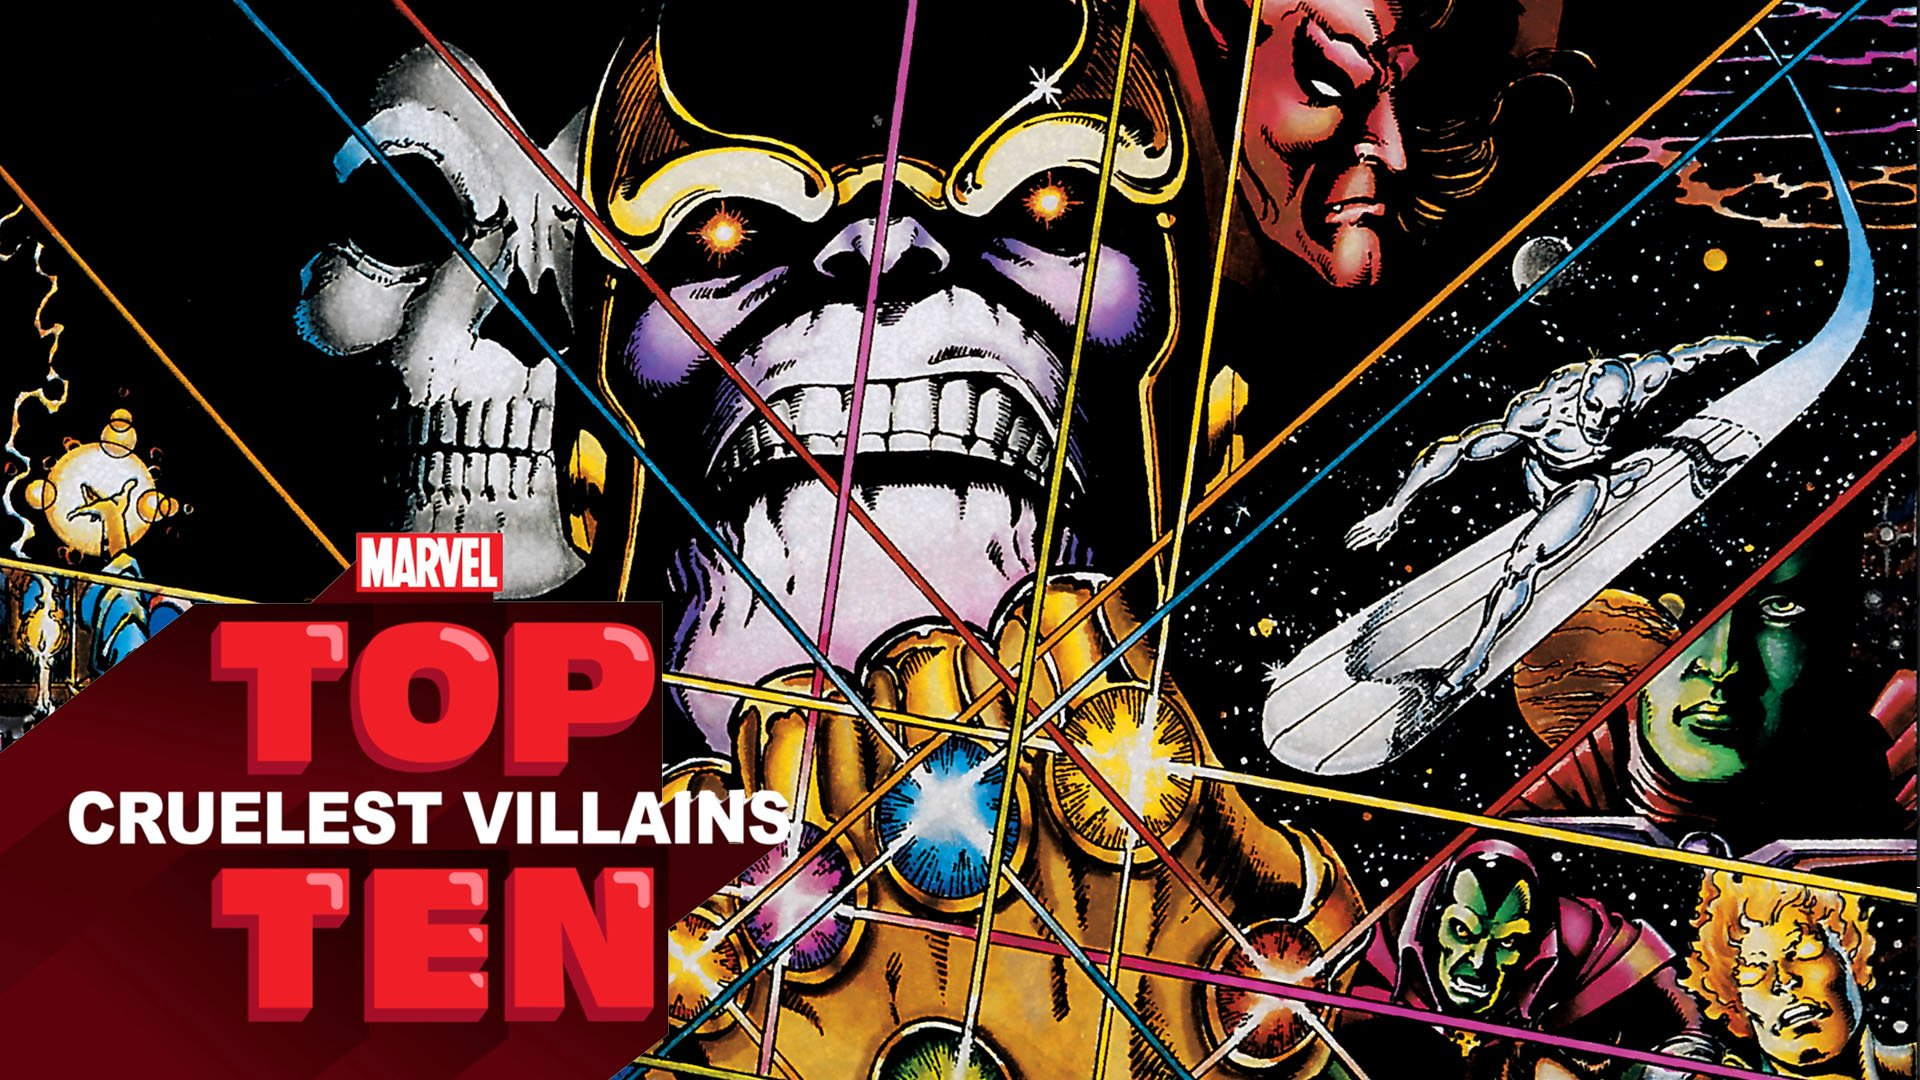 Count down the most sadistically sinister Super Villains of the Marvel Universe in a new #MarvelTopTen! https://t.co/YCYUIWBbQ5